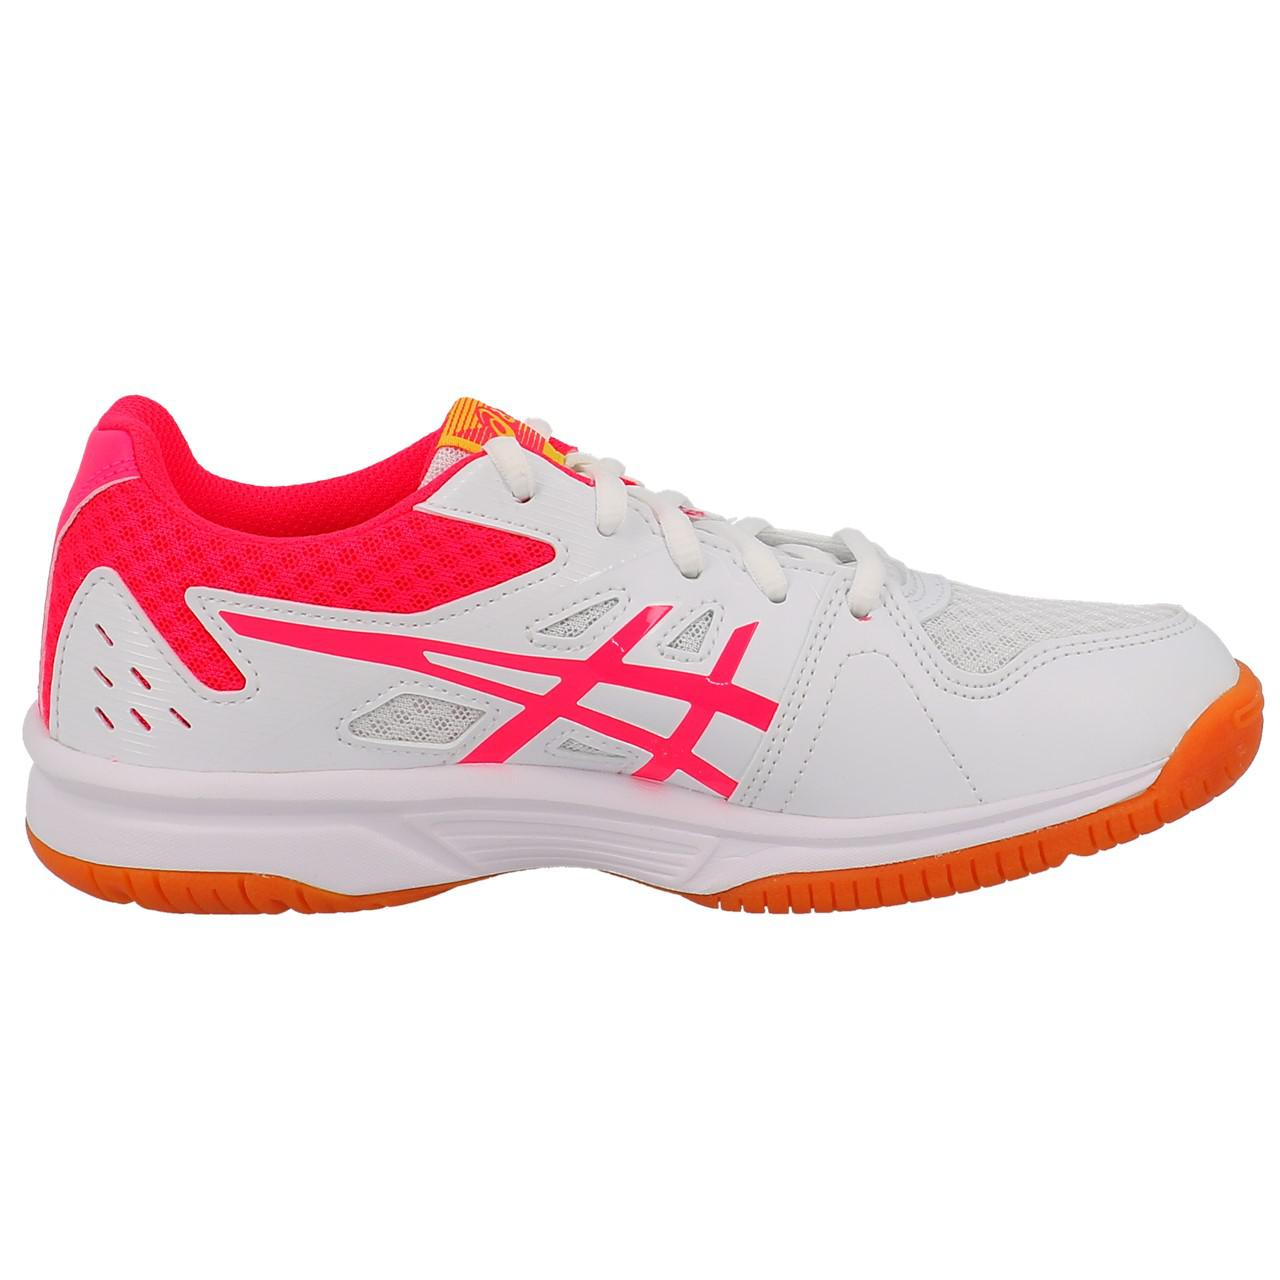 Shoes-Volleyball-Basketball-Asics-Upcourt-3-Wht-Indoor-G-White-19557-New thumbnail 4